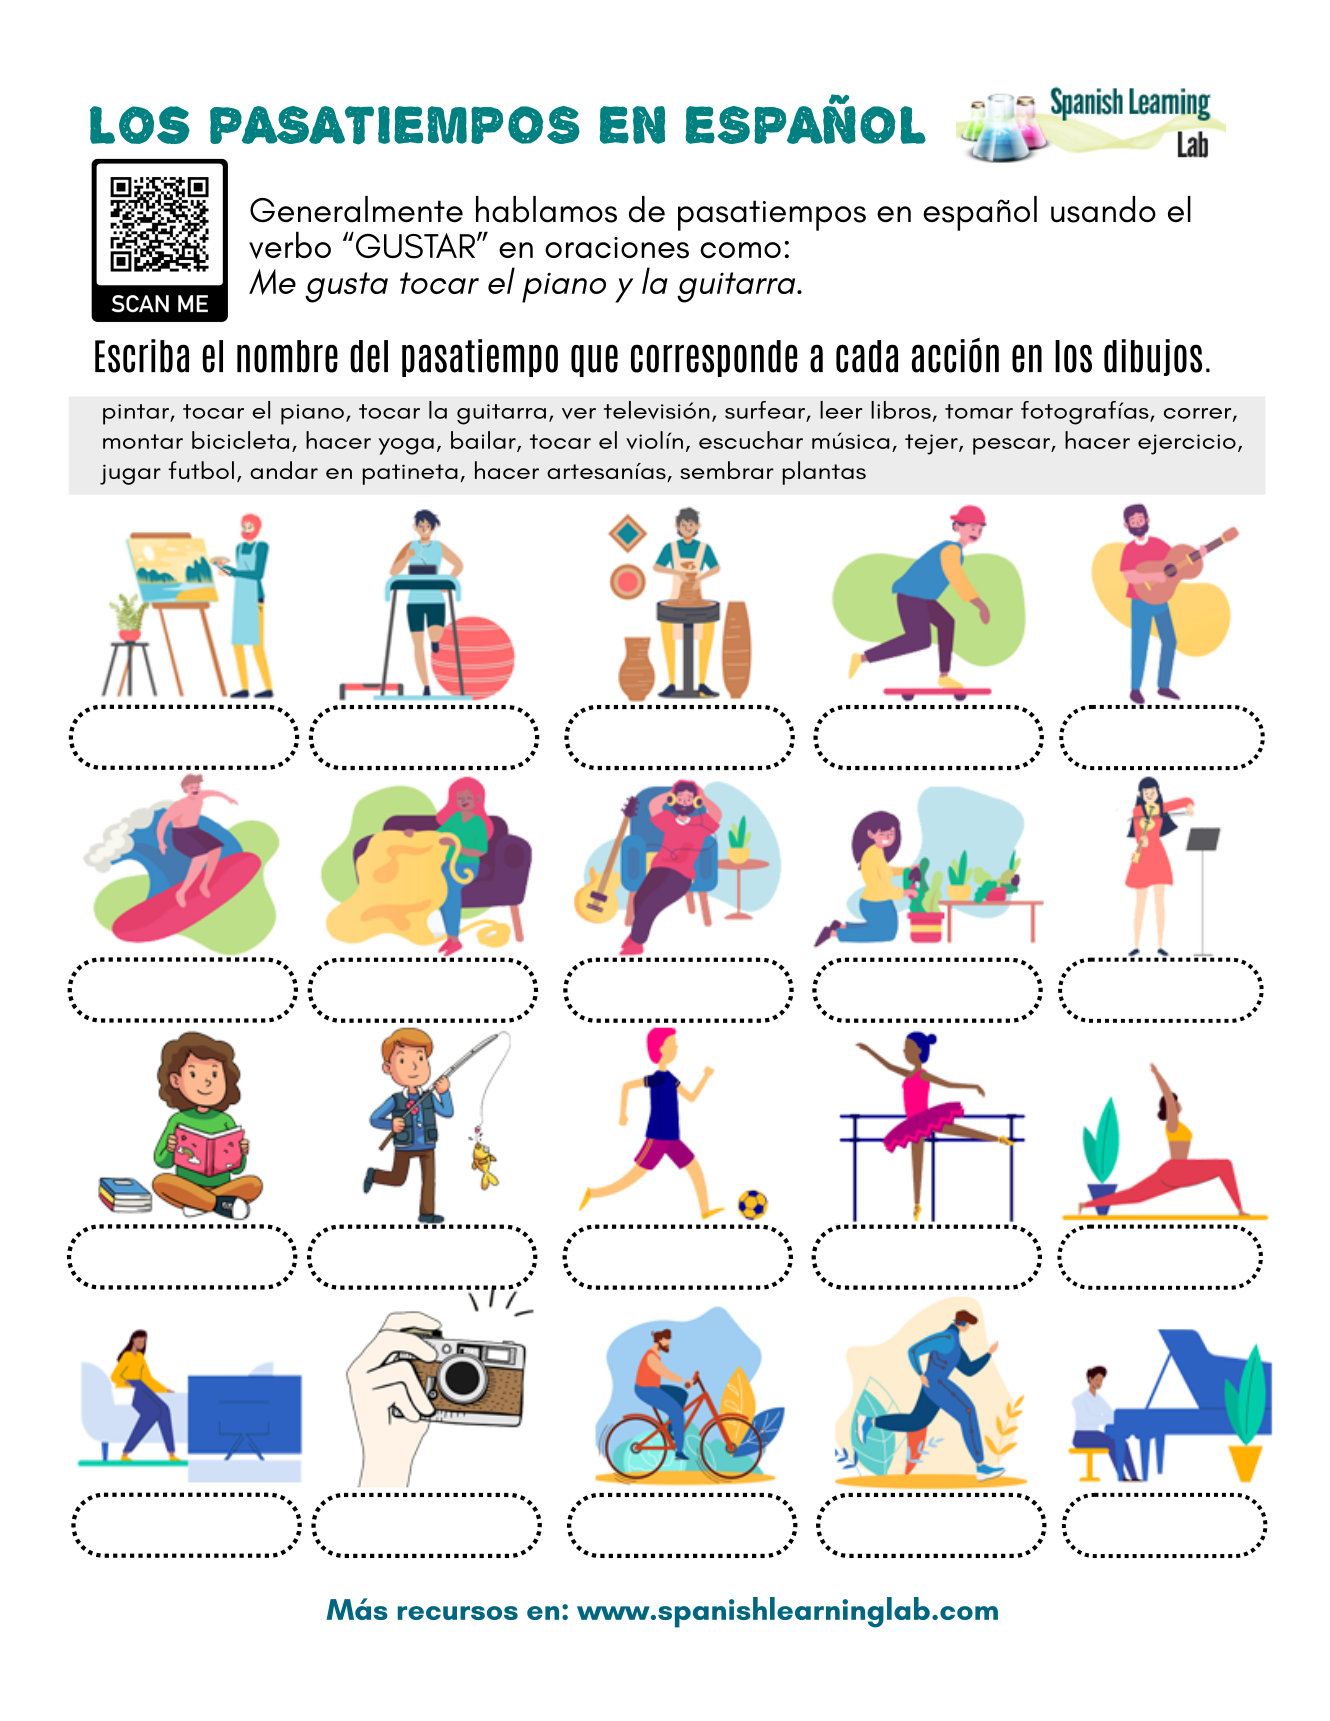 This Worksheet Was Designed To Help You Practice Part Of The Vocabulary For Hobbies In Spanish By Solving The Spanish Lessons For Kids Spanish Spanish Lessons [ 1721 x 1330 Pixel ]